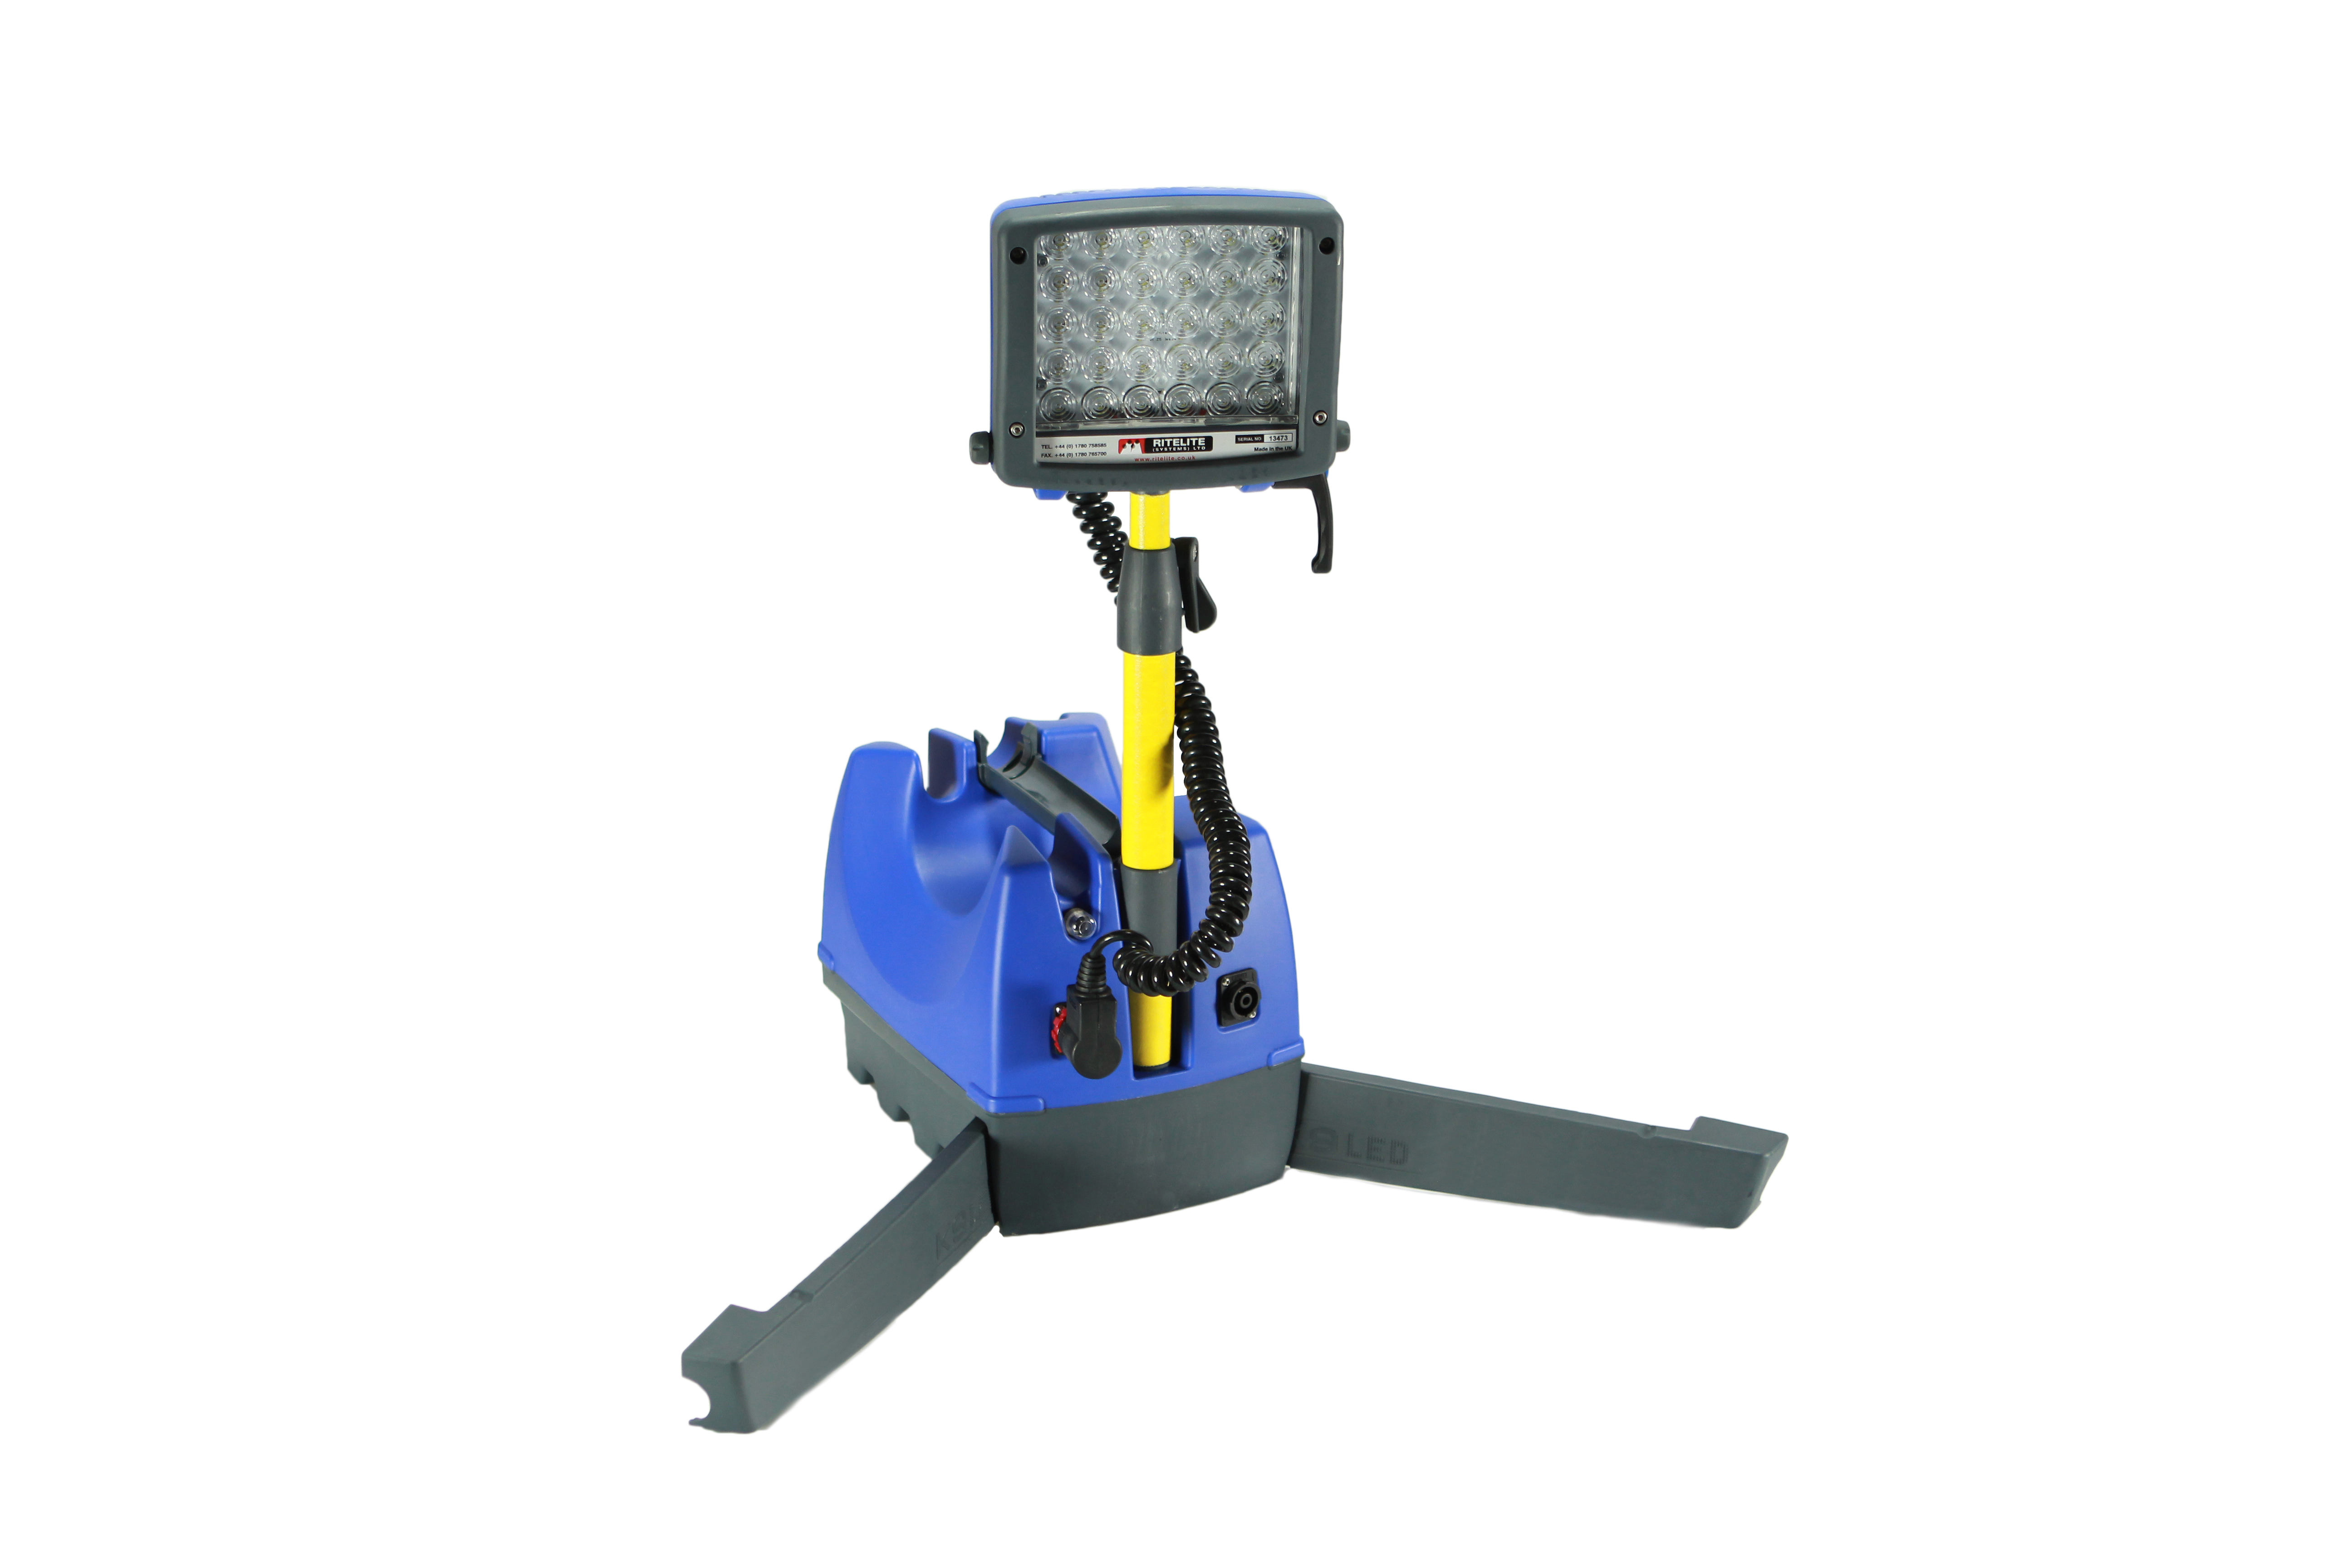 Ritelite K9 Worklight Powerlite Power Generators